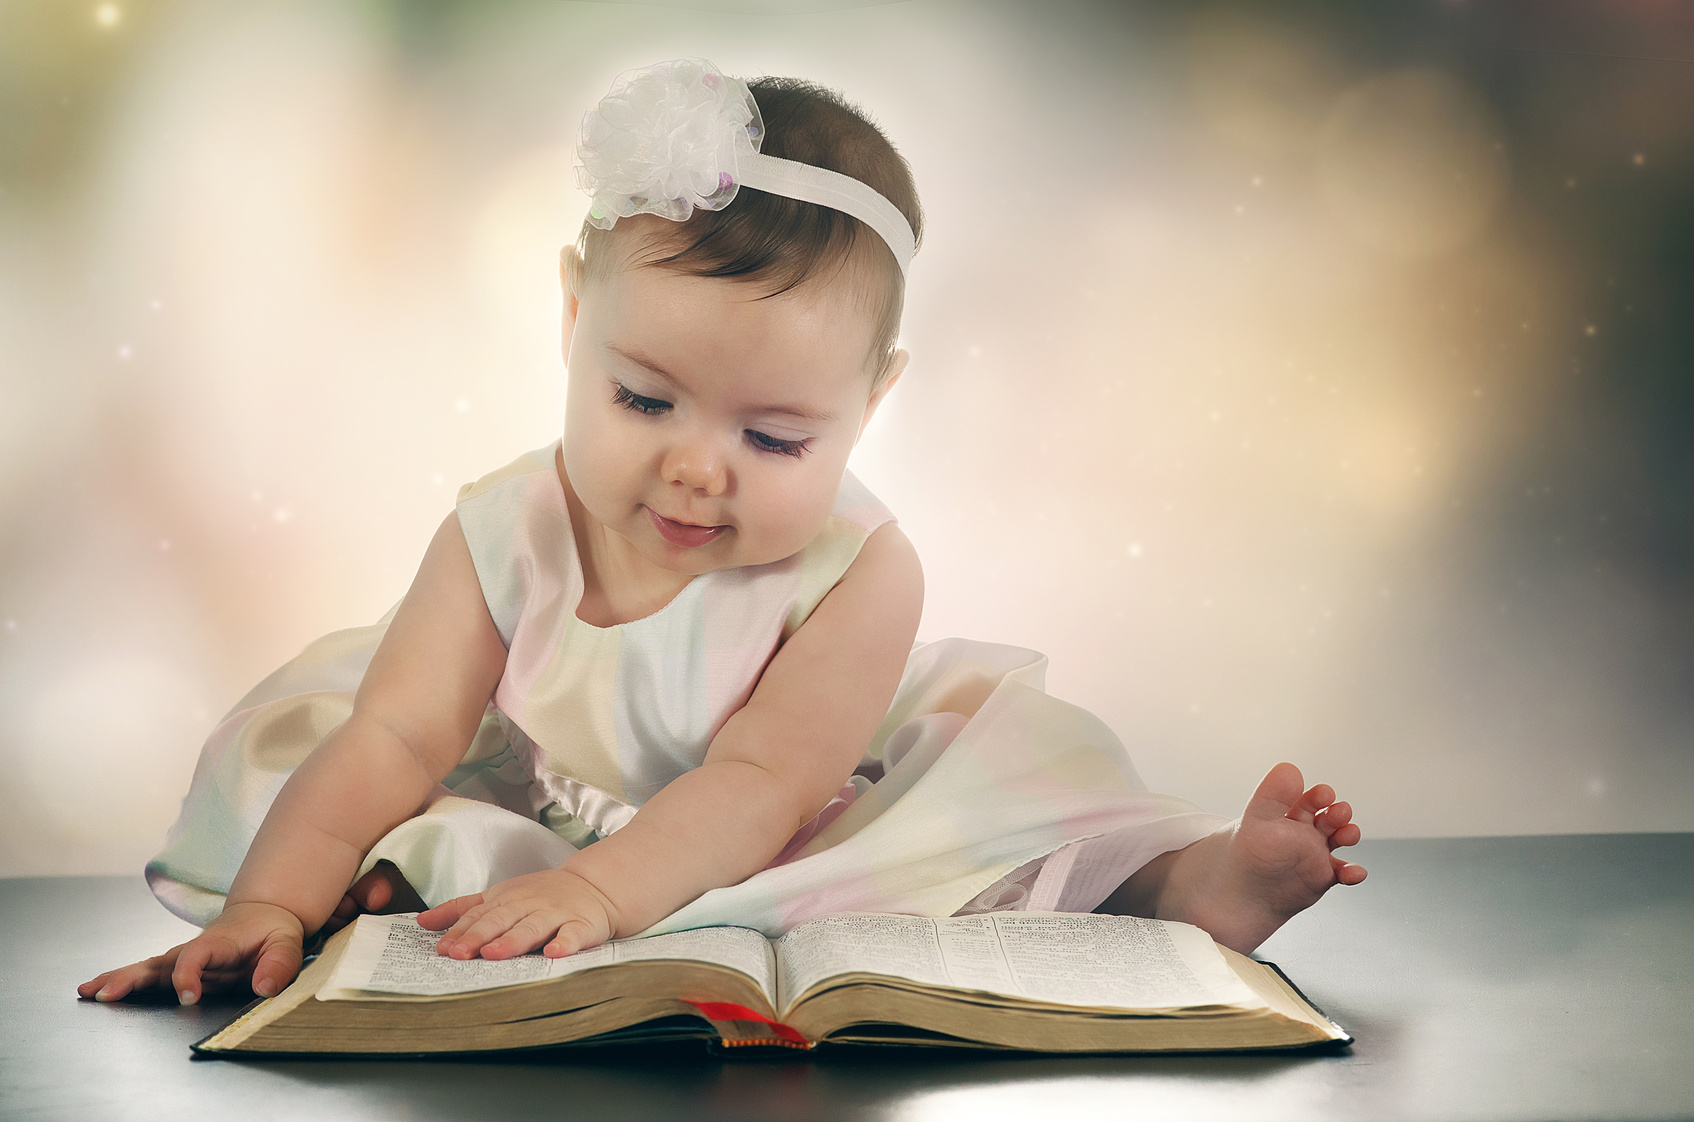 A young baby girl reads a Bible.